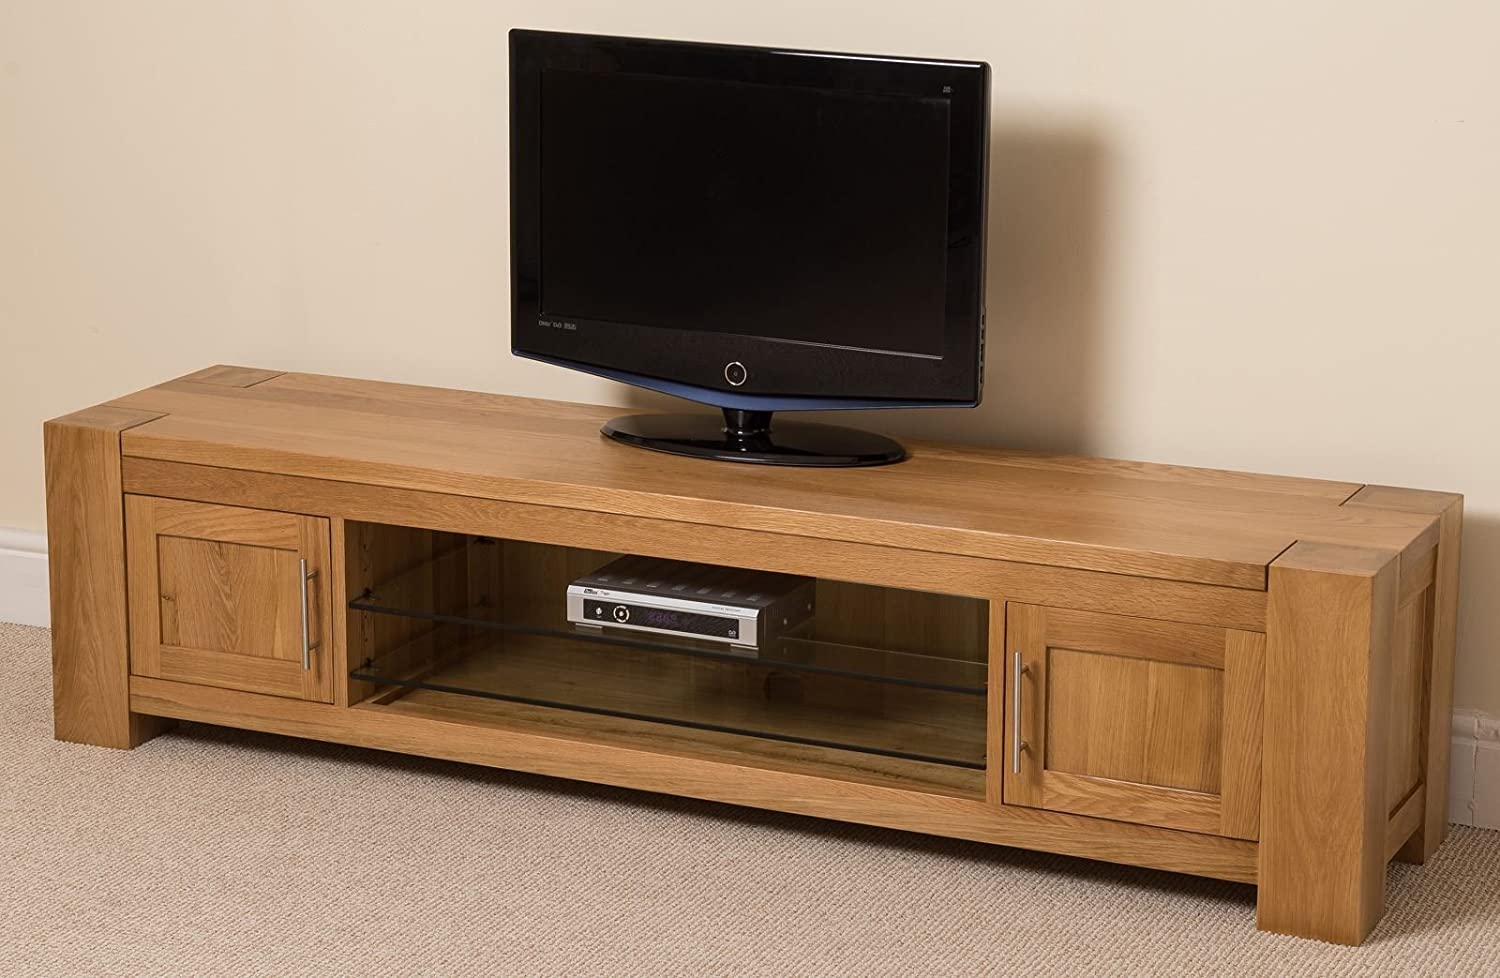 Kuba Chunky Solid Oak Wood Glass Widescreen TV Cabinet Unit 1815 L X 445 H 425 W Cm Amazoncouk Kitchen Home